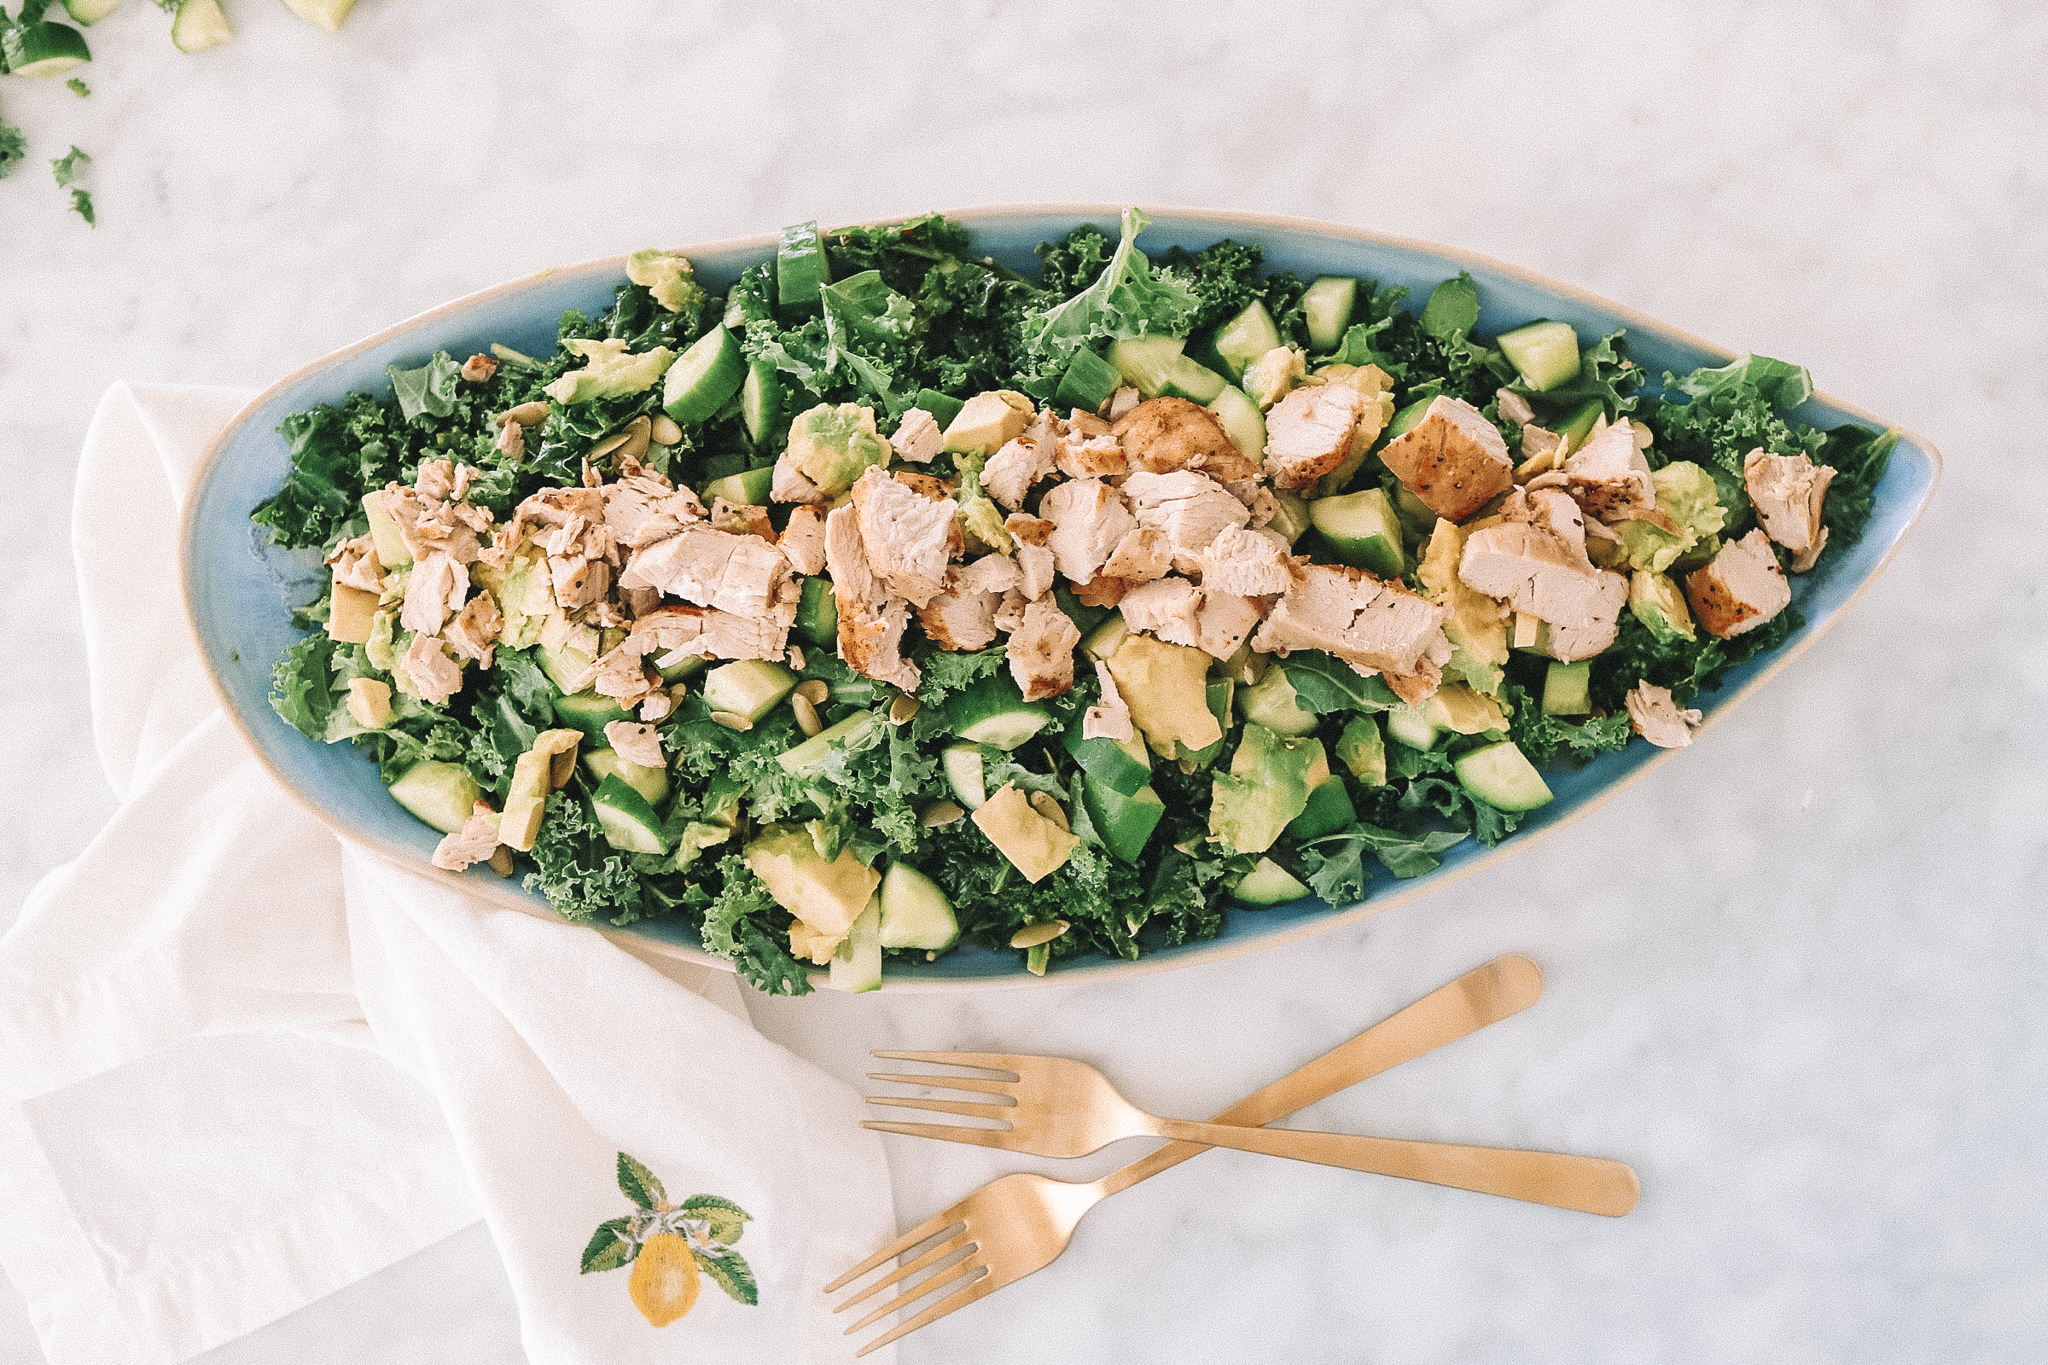 Kale Salad with Chicken